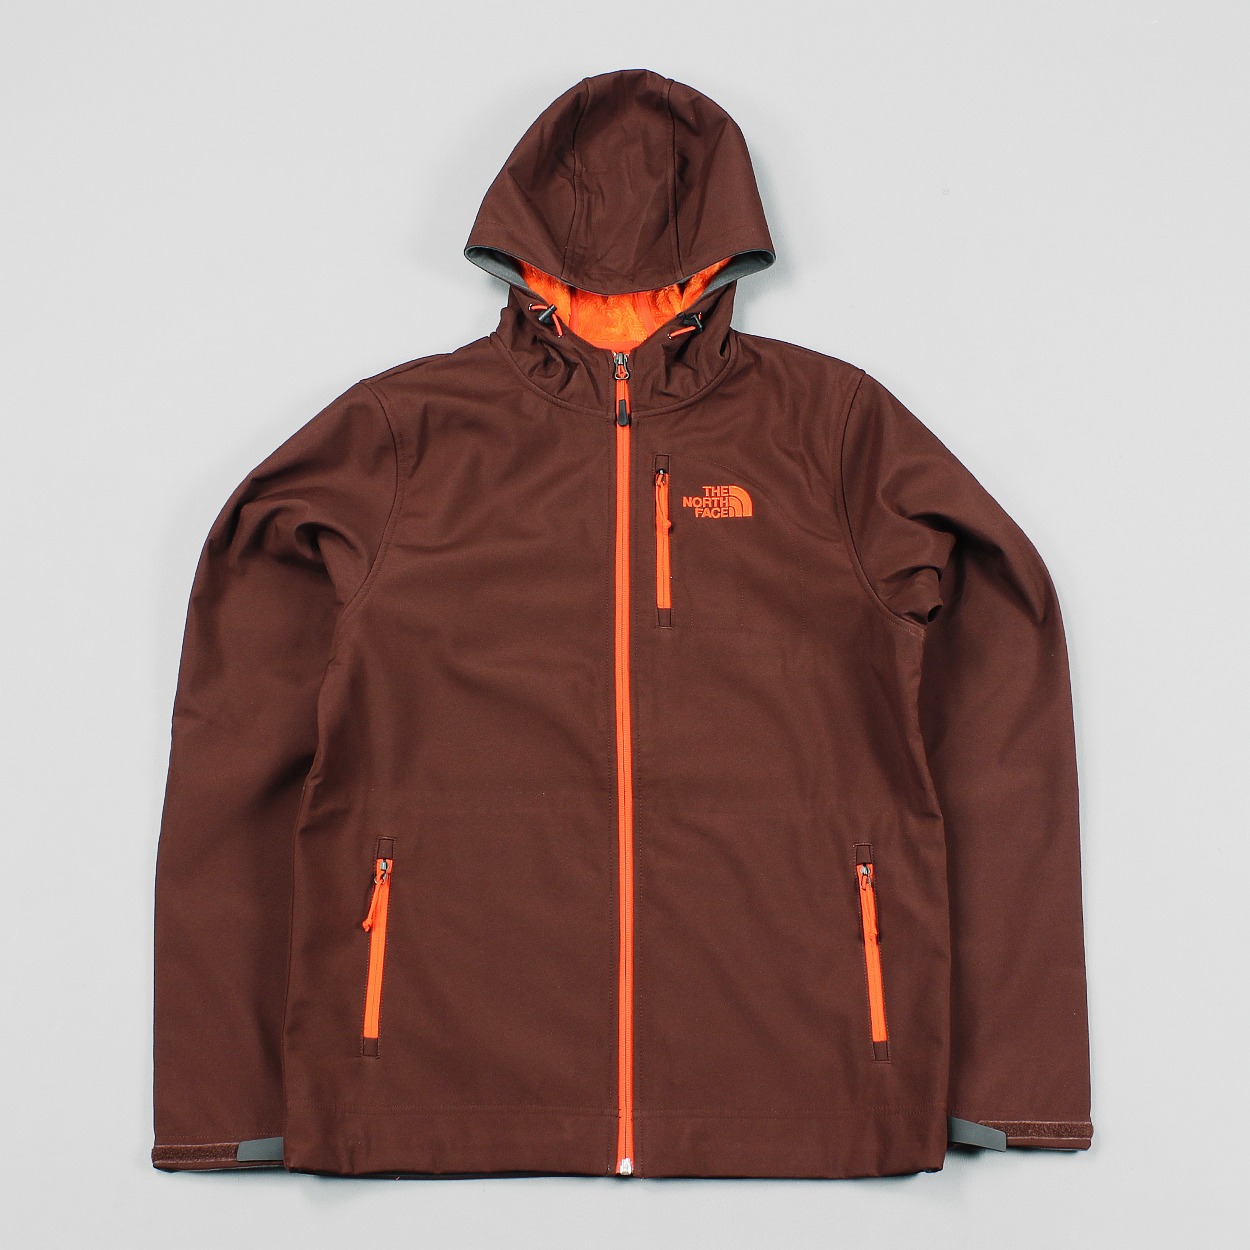 dc2aa238398 The North Face Mens Durango Hoodie Jacket Sequence Red Outdoor £105.00